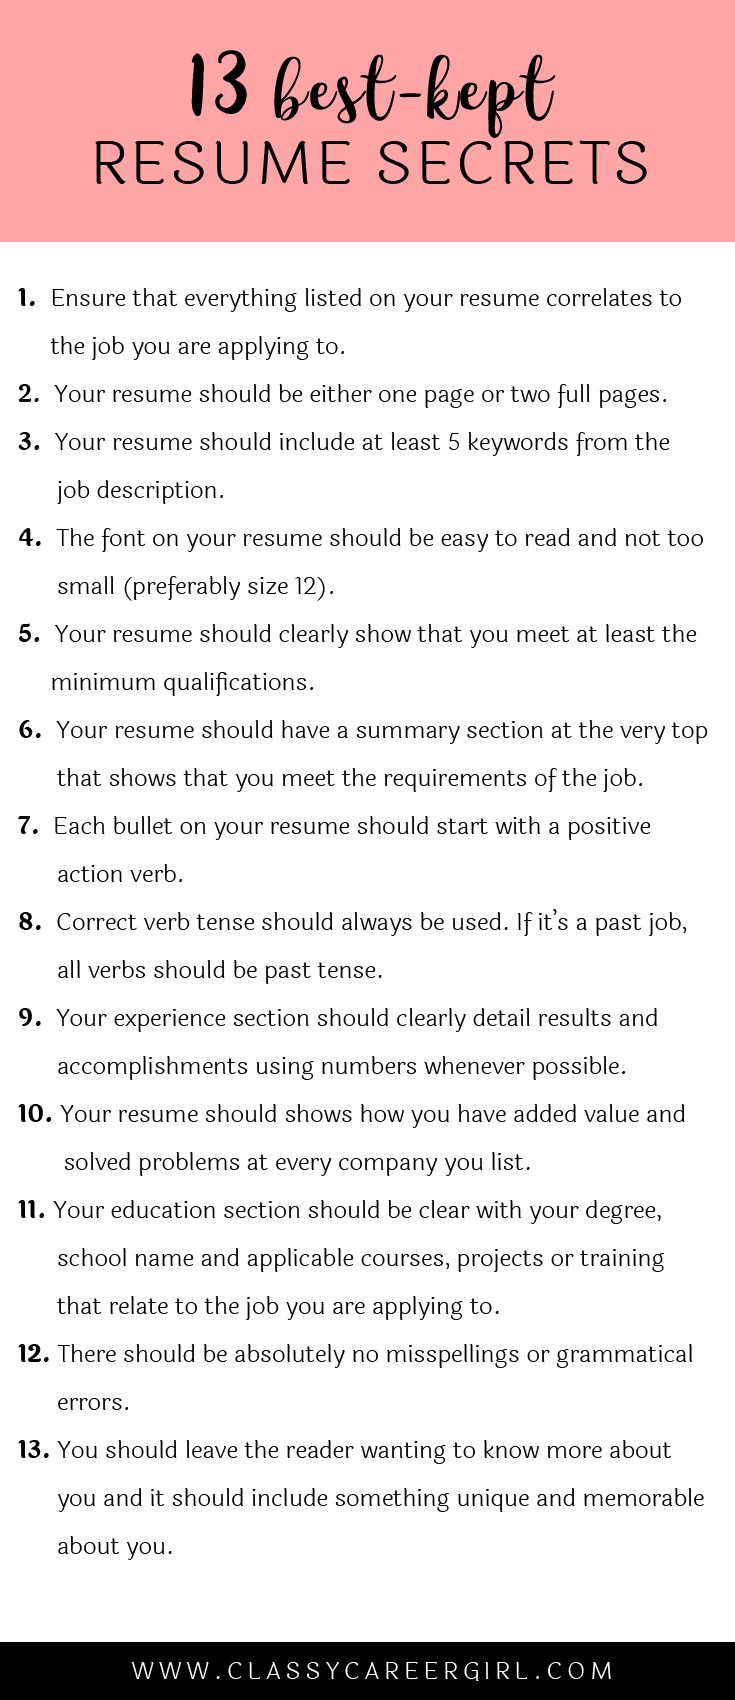 Opposenewapstandardsus  Marvelous  Ideas About Resume On Pinterest  Cv Format Resume Cv And  With Likable Some Hiring Managers Will Toss Your Resume Out If You Dont Know These  With Delectable High School Diploma Resume Also First Resume Examples In Addition Acting Resume No Experience And Teachers Resume Example As Well As Put Address On Resume Additionally Resume Format For College Students From Pinterestcom With Opposenewapstandardsus  Likable  Ideas About Resume On Pinterest  Cv Format Resume Cv And  With Delectable Some Hiring Managers Will Toss Your Resume Out If You Dont Know These  And Marvelous High School Diploma Resume Also First Resume Examples In Addition Acting Resume No Experience From Pinterestcom